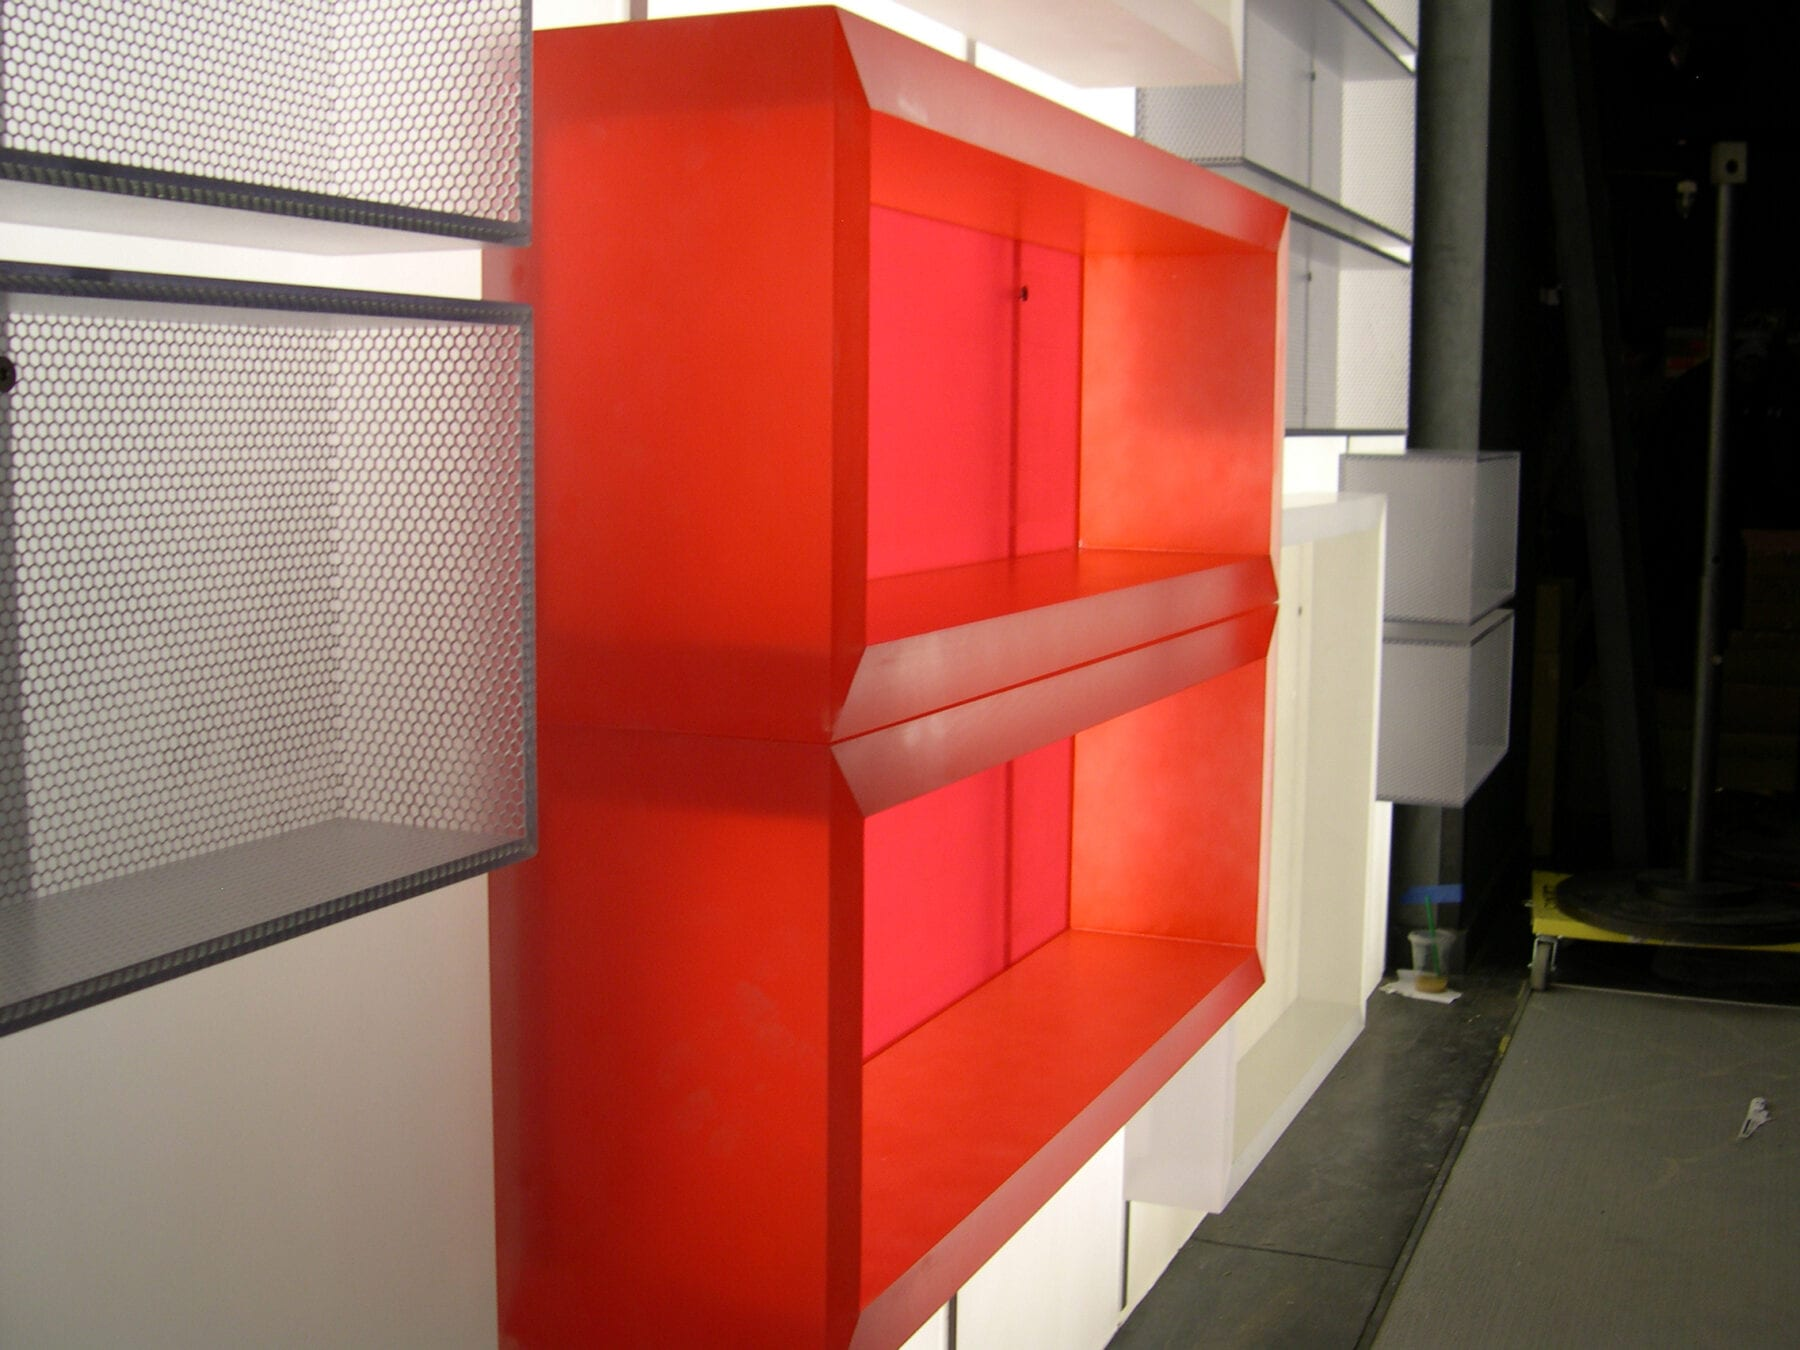 Custom Fabrication of Backlit Architectural Glass Chroma for Under Armour for Construction Specialty Projects by Commercial Builder & General Contractor Structural Enterprises